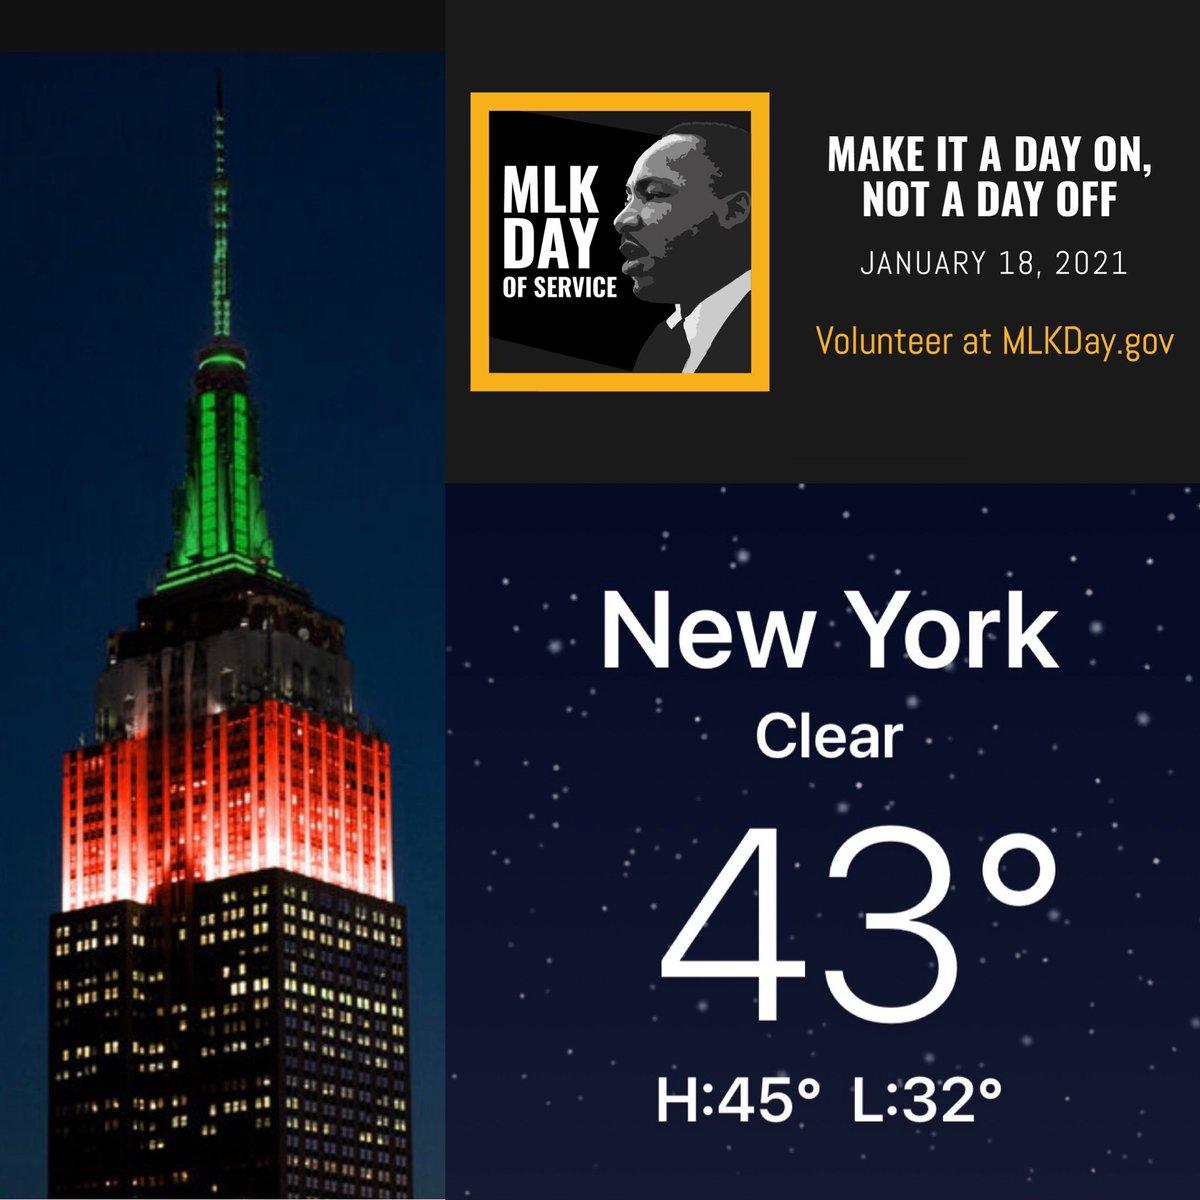 It's a crisp night in #NYC with temps heading into the 30s as NYers join with the #EmpireStateBuilding, lit in Red, Green & Black in honor of #MartinLutherKingJr on #NationalMartinLutherKingDay @EmpireStateBldg @NY1weather @MLKDay @NationalDayCal